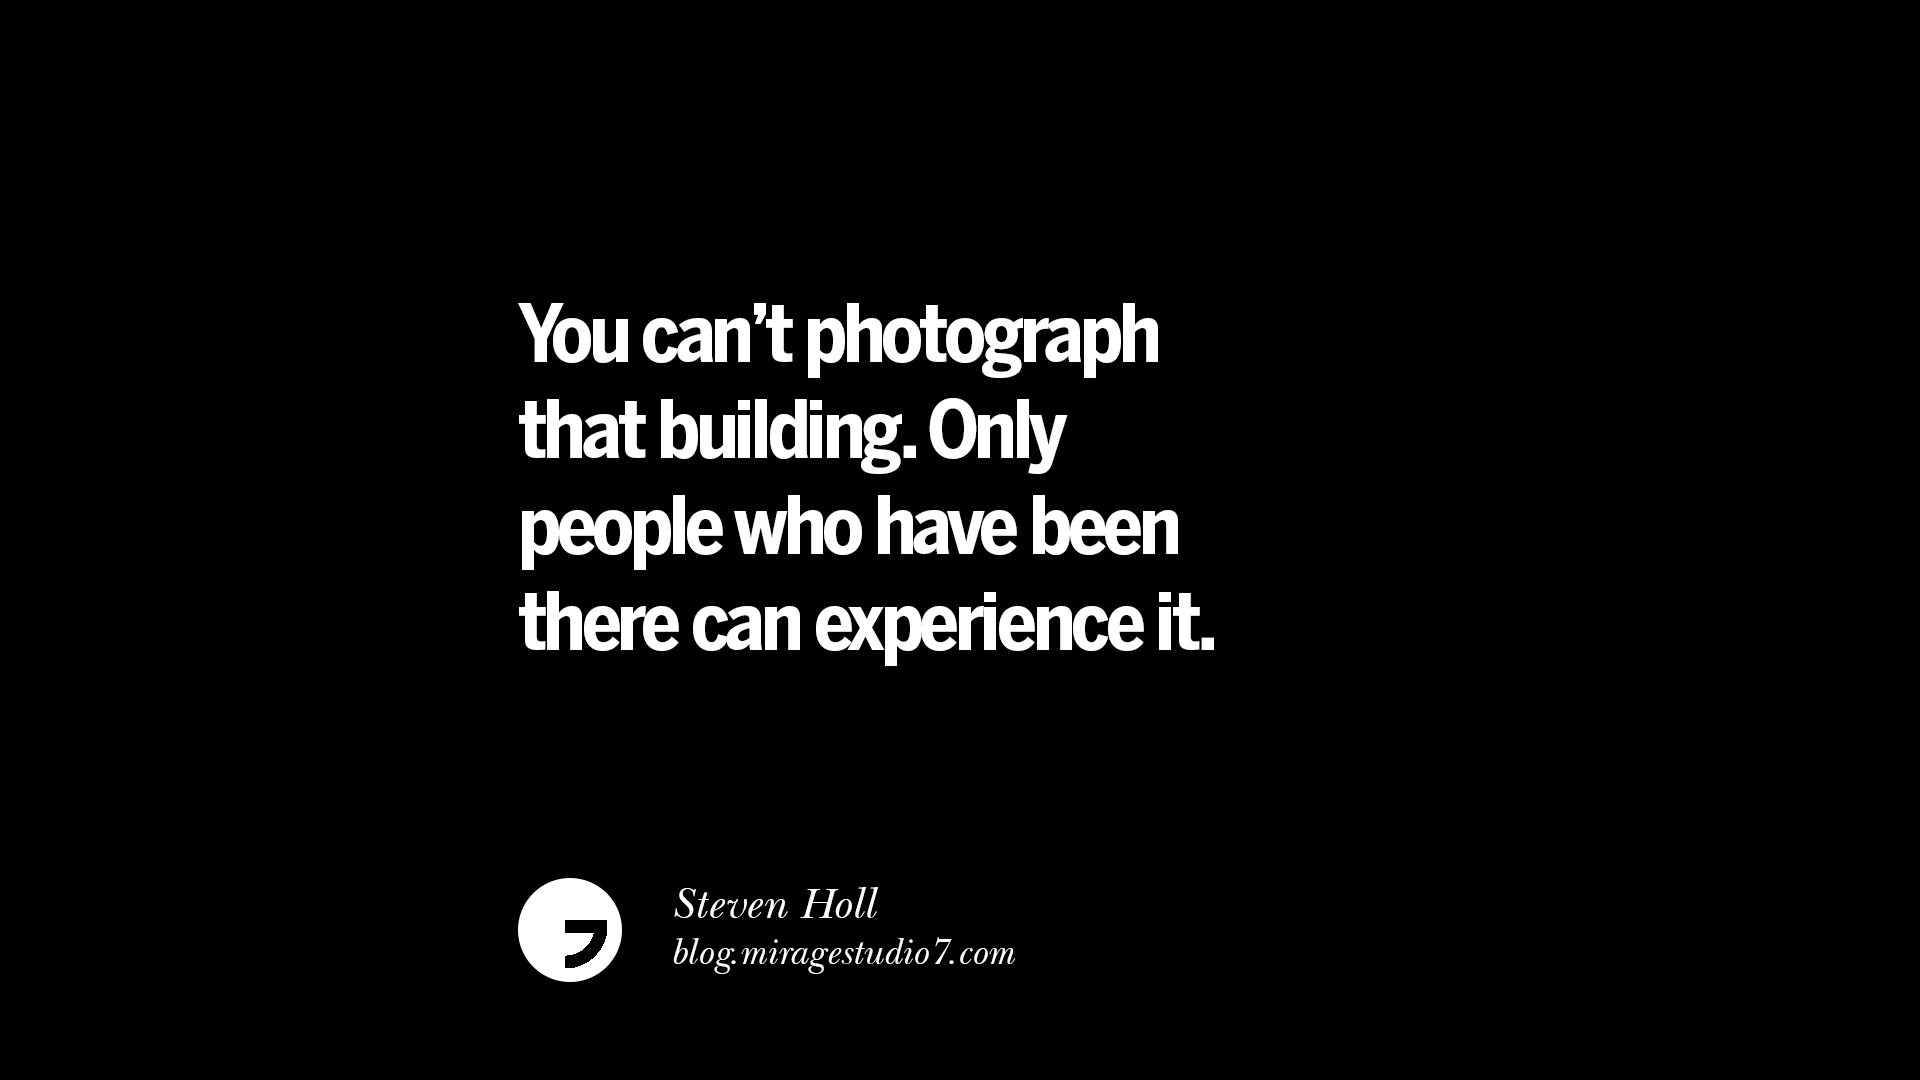 steven_holl_quote